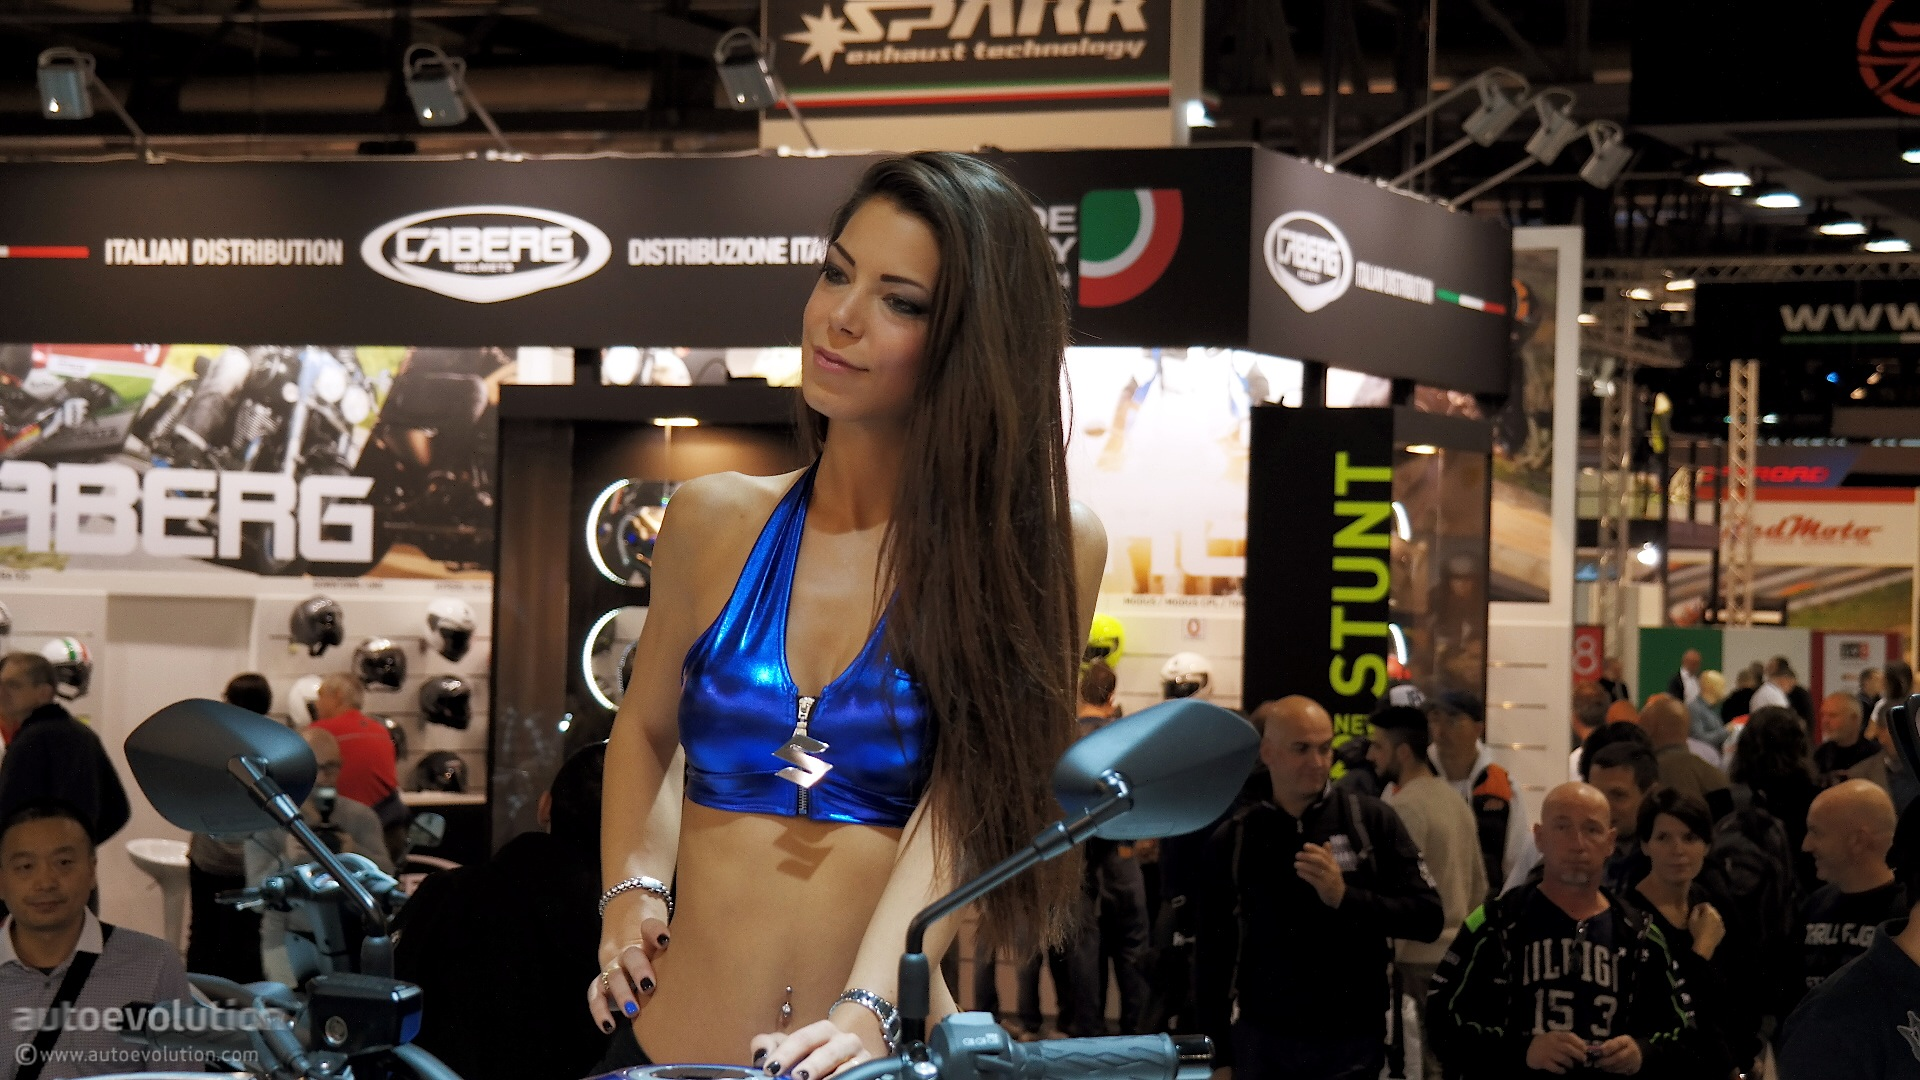 EICMA 2014 Belles Fall in Love with autoevolution ...